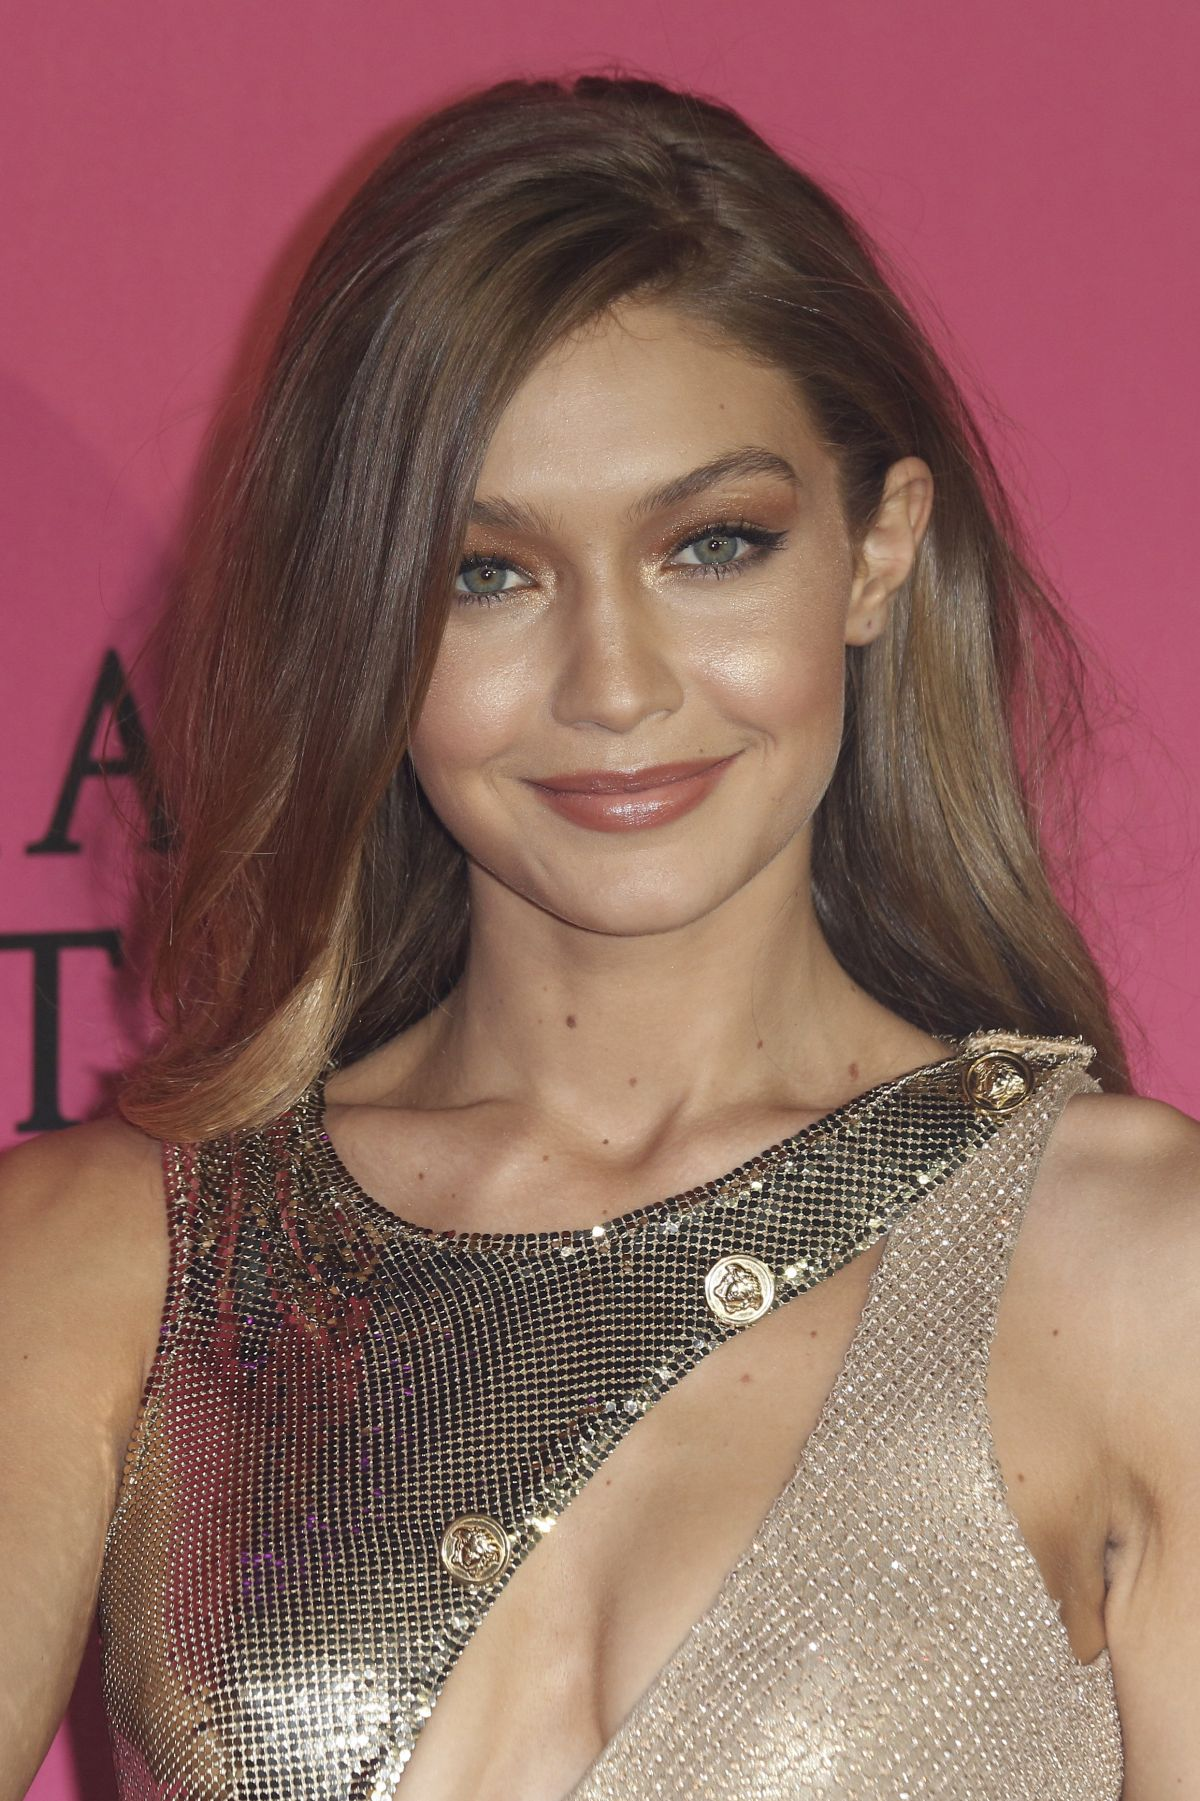 gigi hadid - photo #33